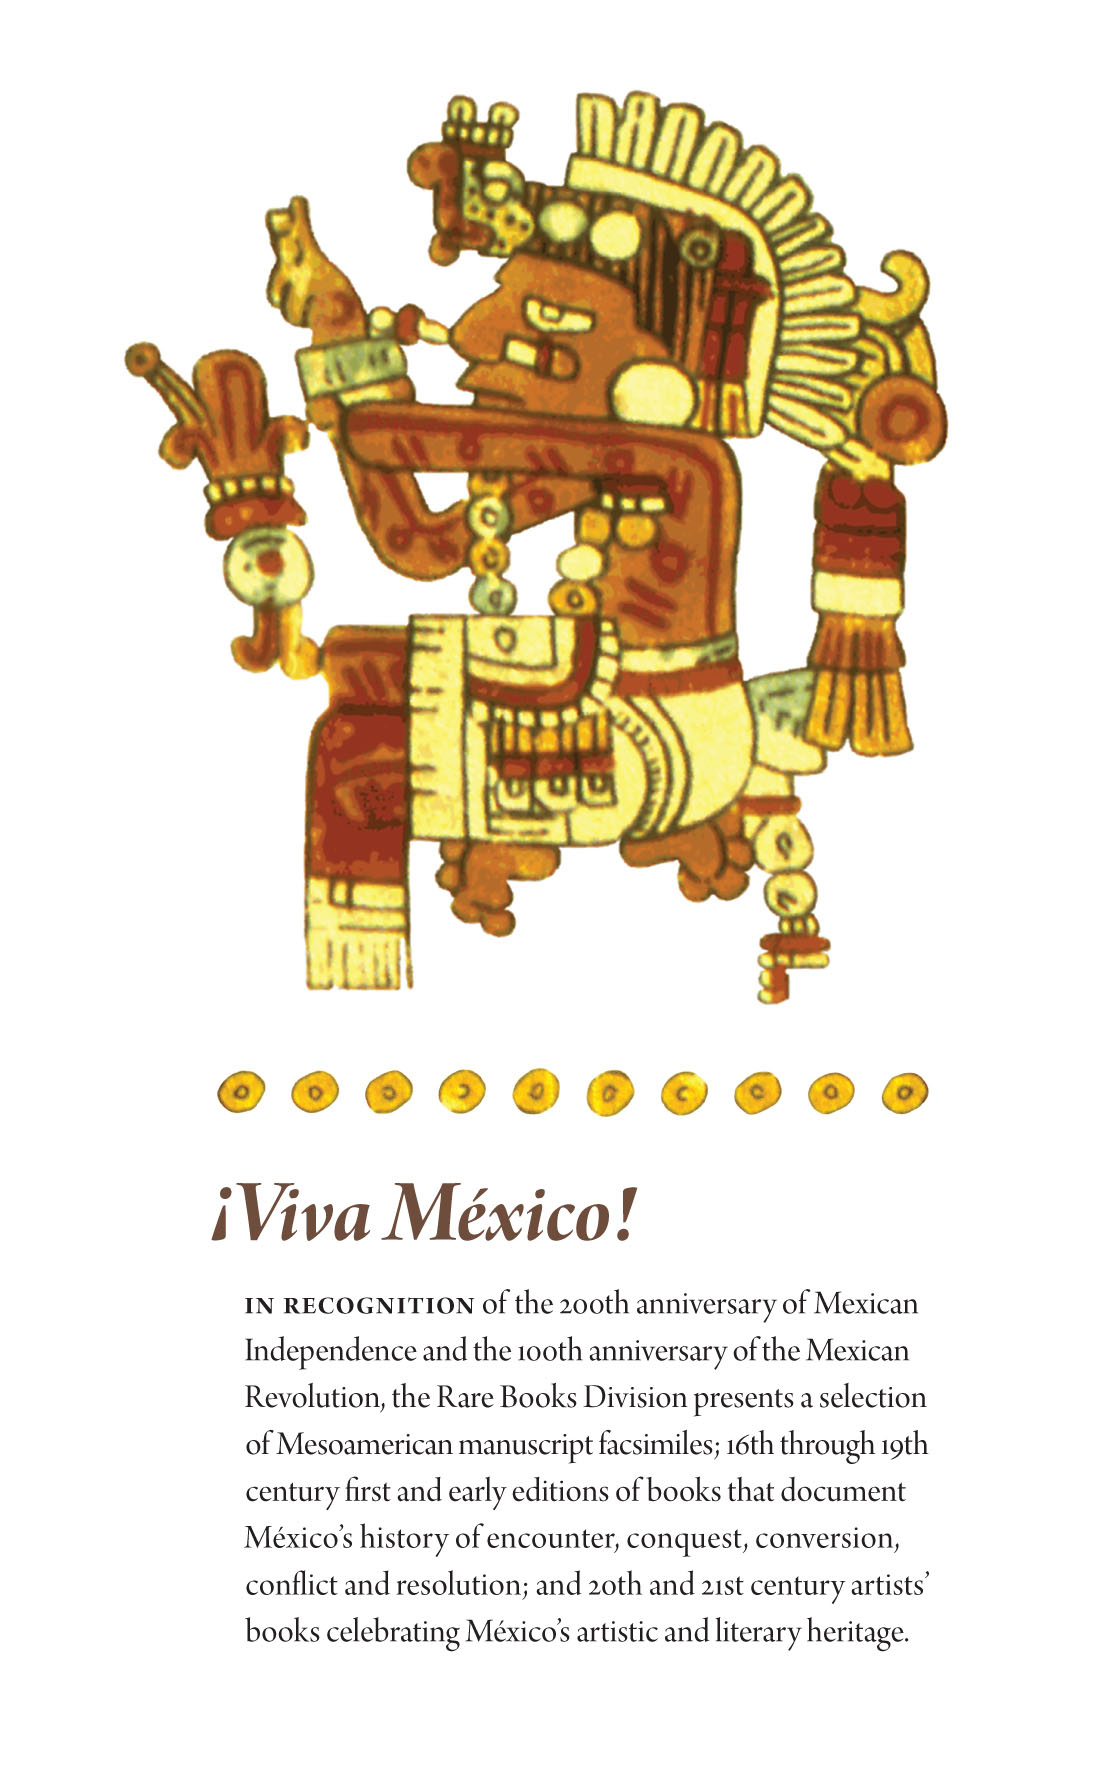 Viva Mexica Exhibition Poster